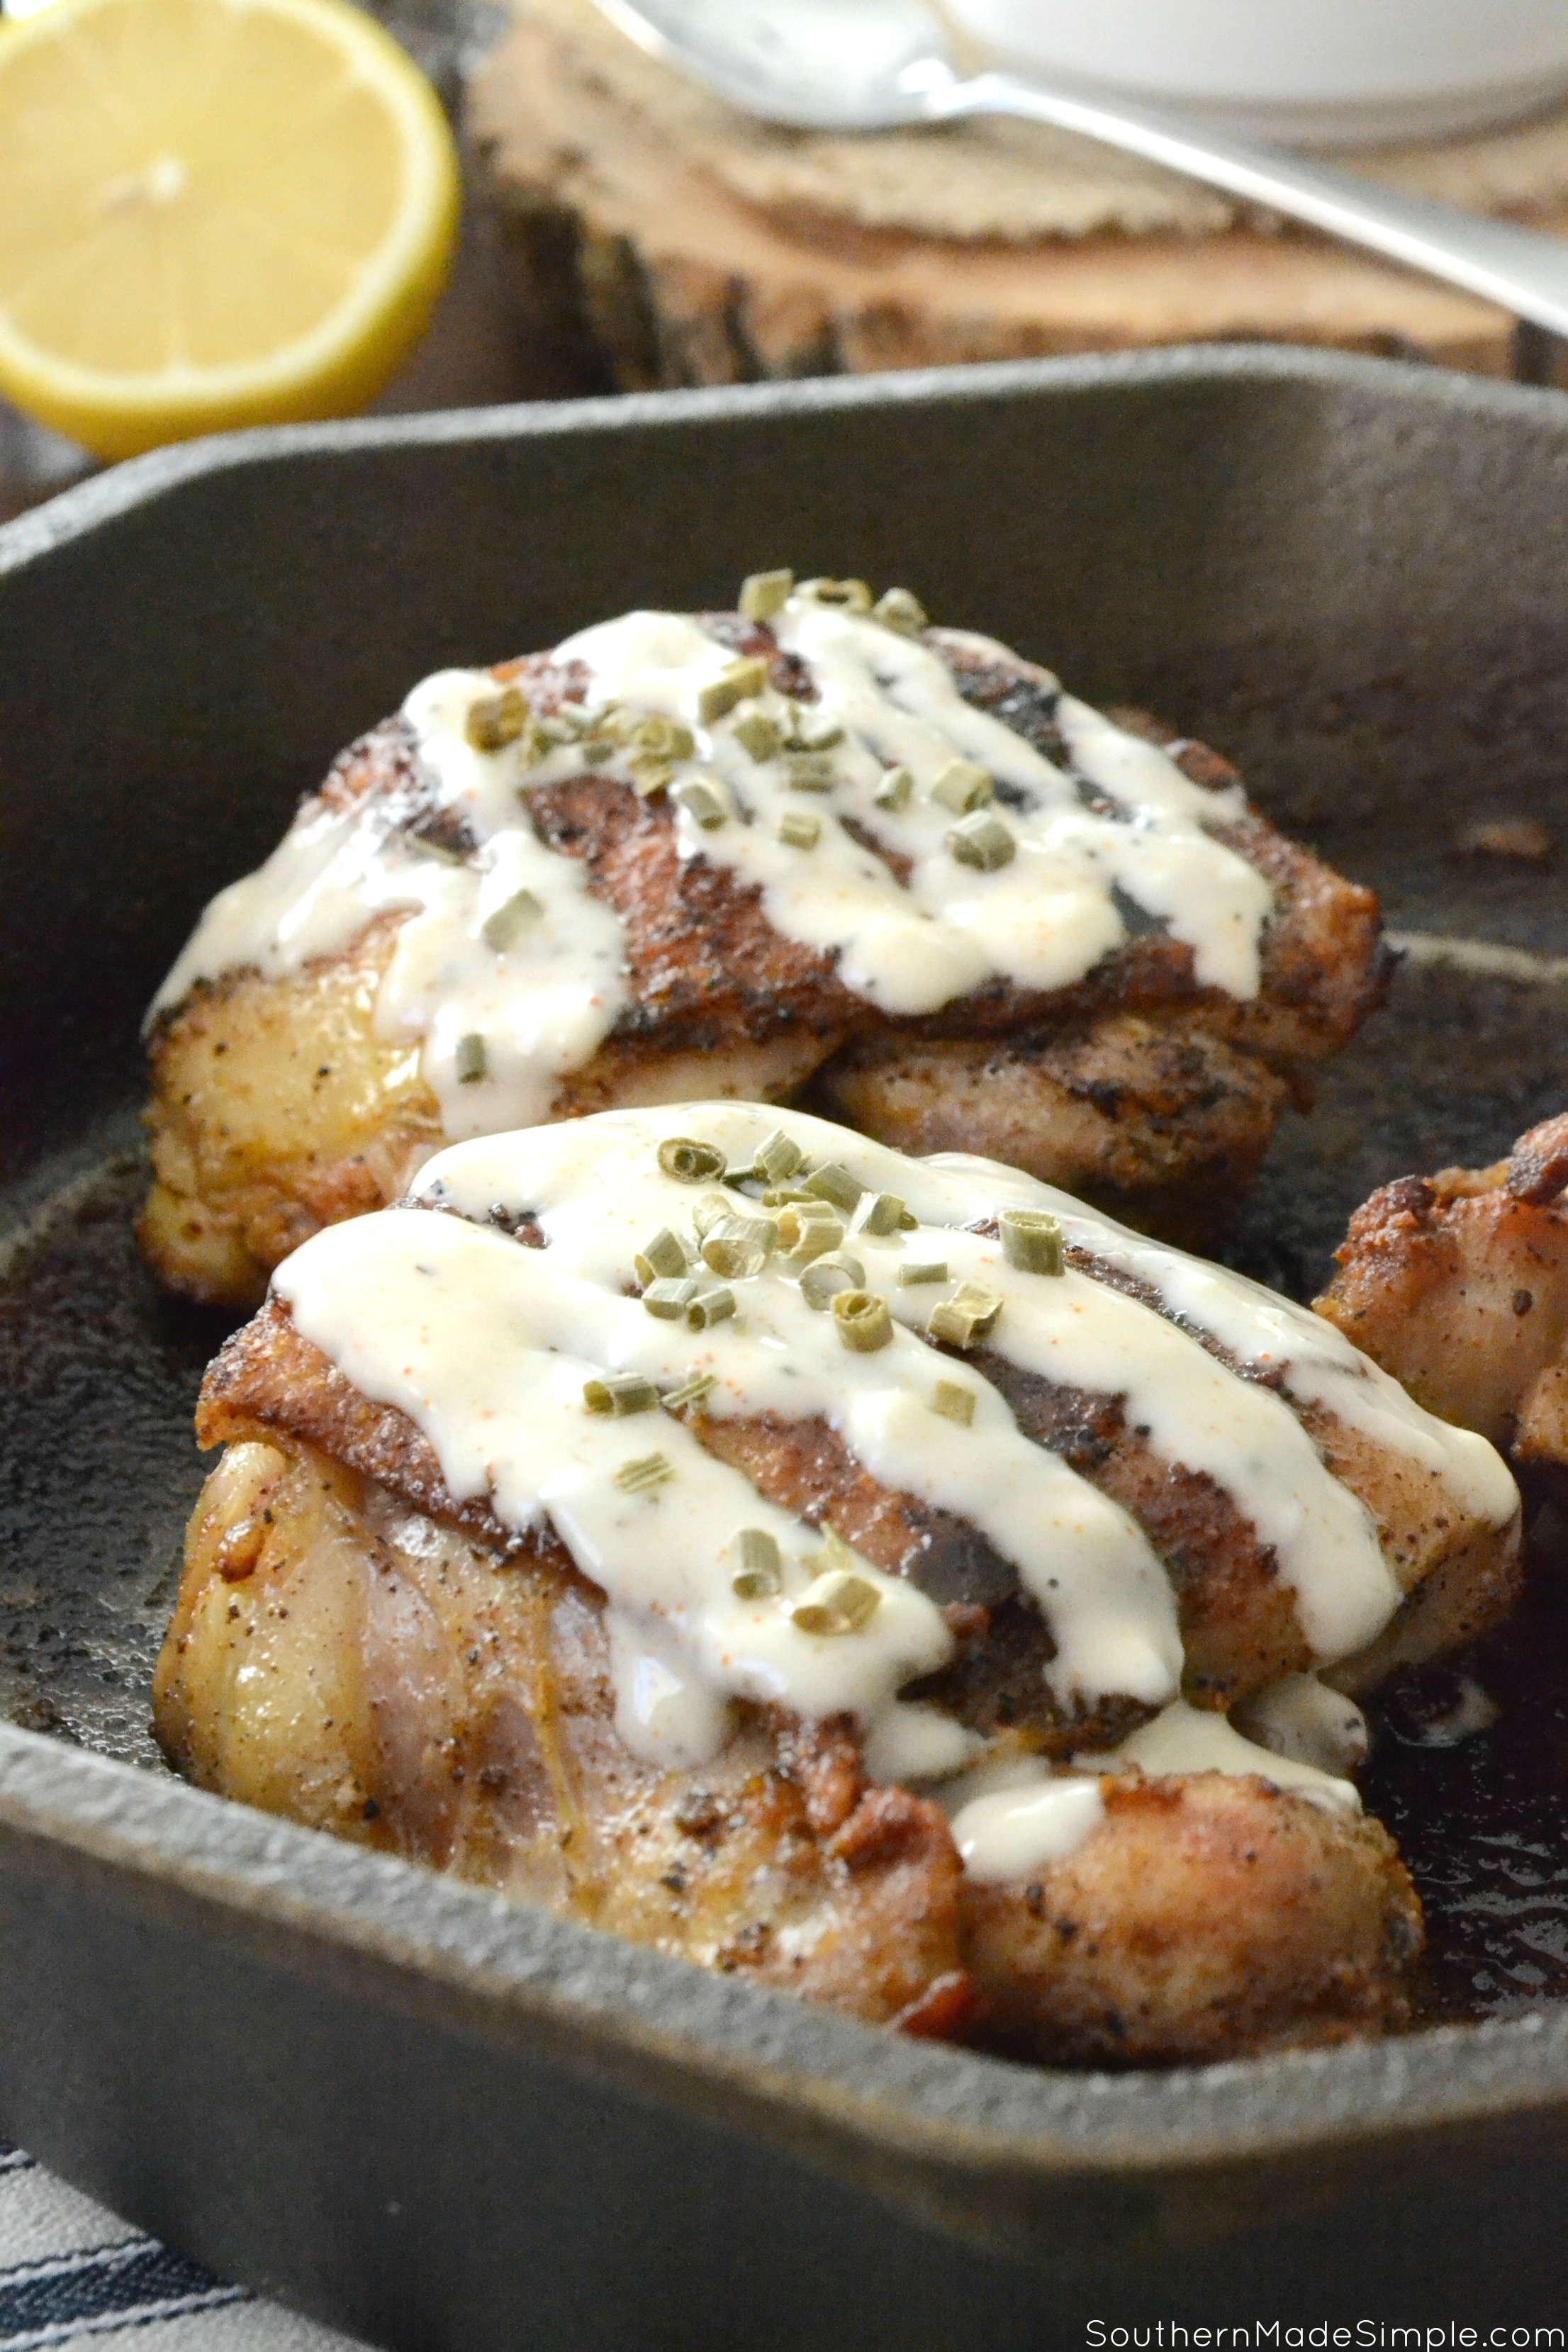 Cast Iron Skillet Cooking: Grilled Chicken Thighs with Alabama White BBQ Sauce #mysouthernkitchen #ad